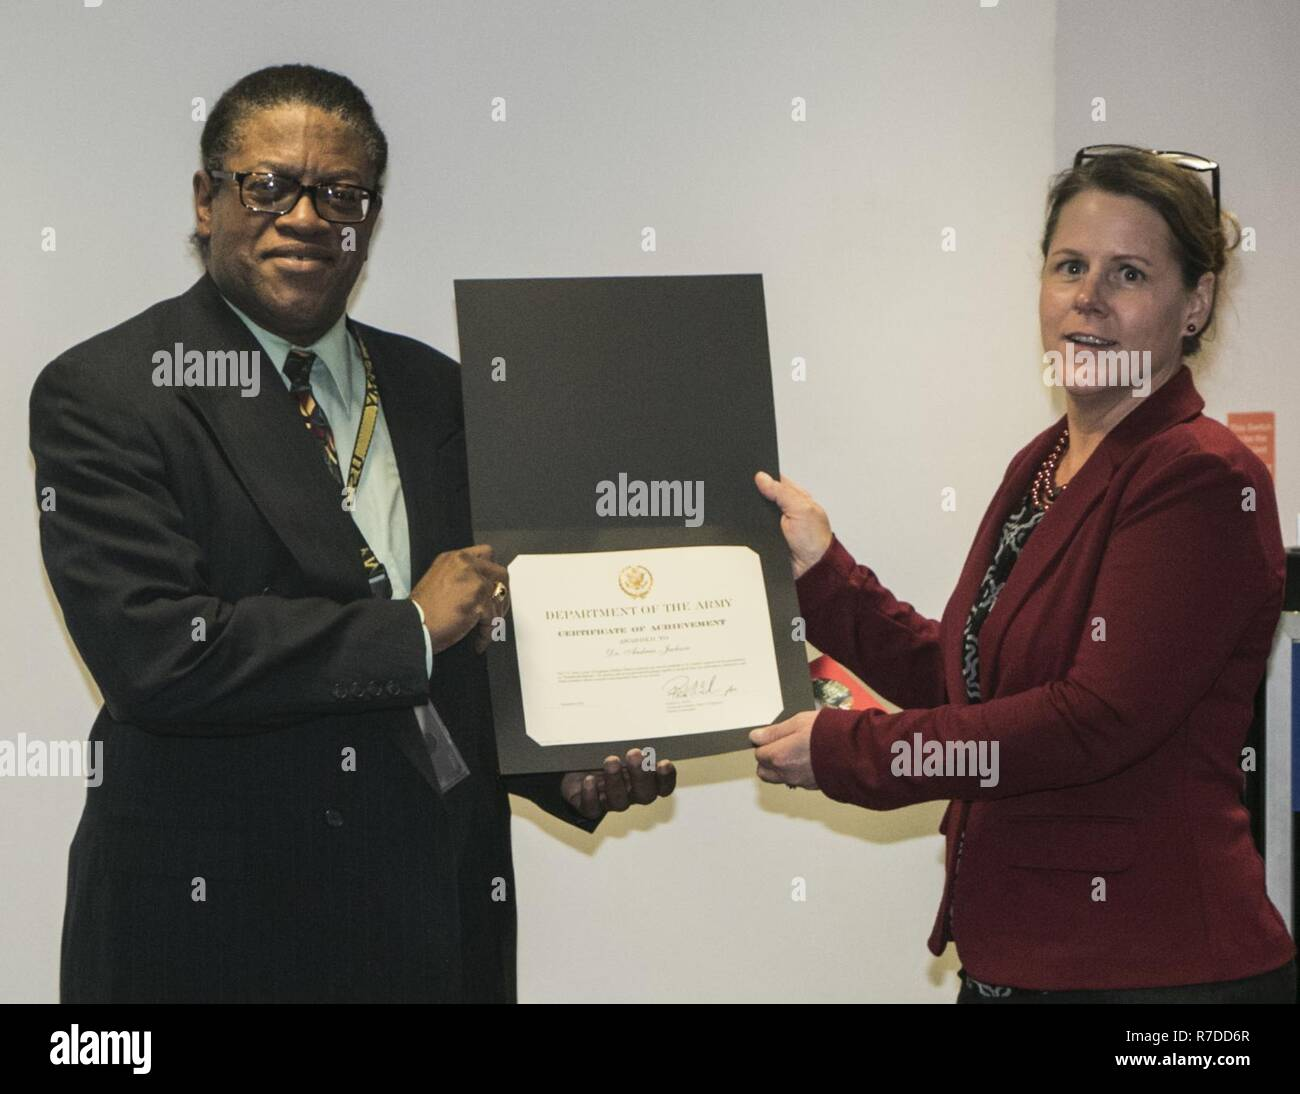 Deb Czombel, Buffalo District Supervisory Program Analyst, awards Dr. Andrew Jackson, Buffalo District Workforce Development Program Specialist, with a Certificate of Achievement after he hosts a lunch-and-learn presentation on institutional racism at the District reservation, December 3, 2018. - Stock Image